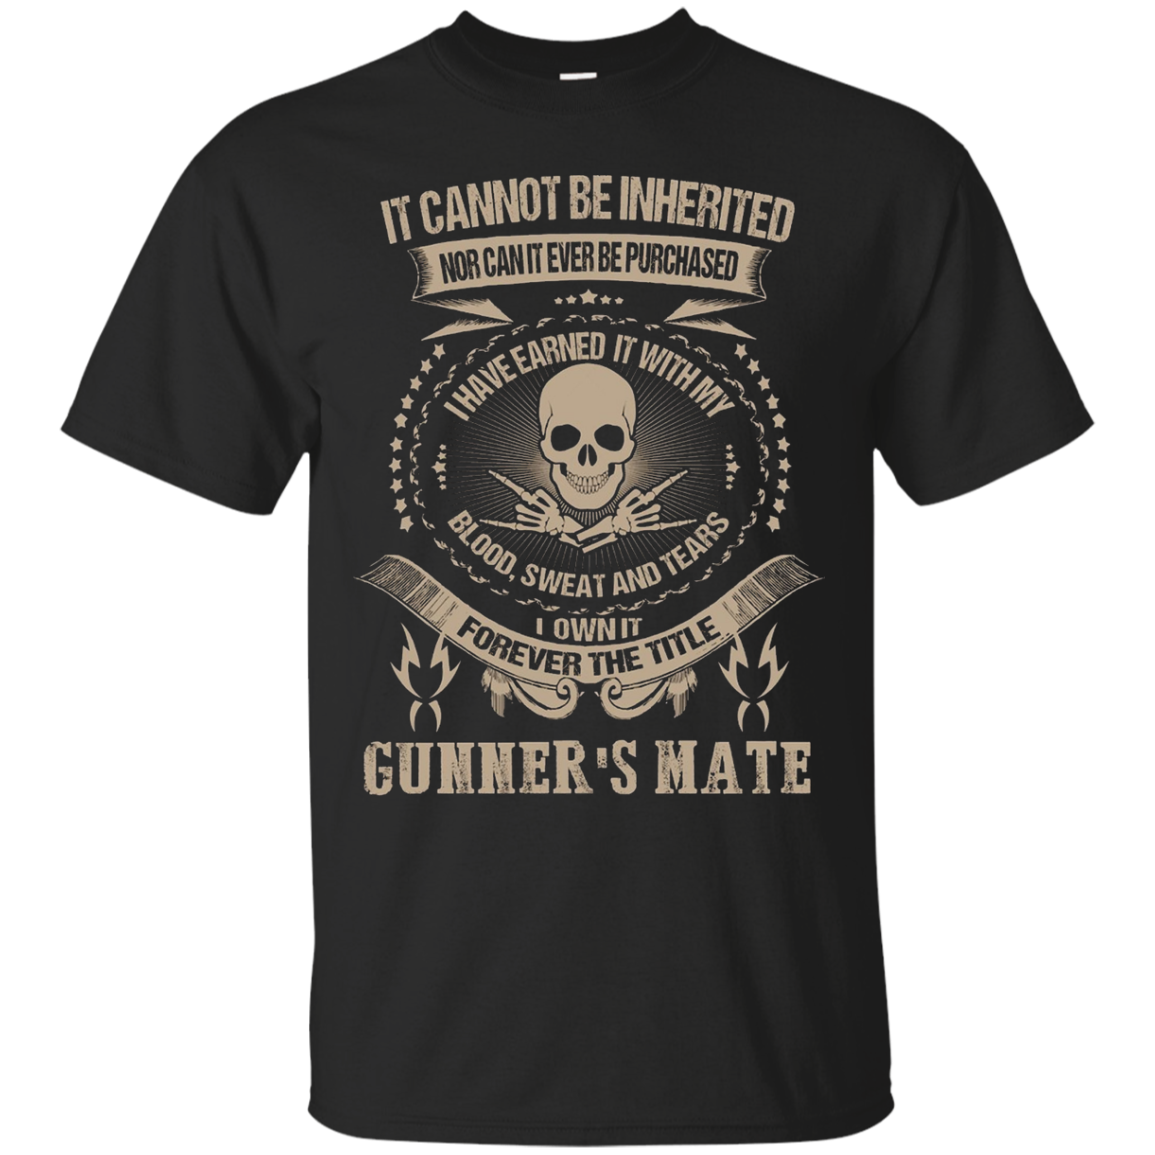 Gunner's mate T-shirt , It cannot be inhereited nor can it e